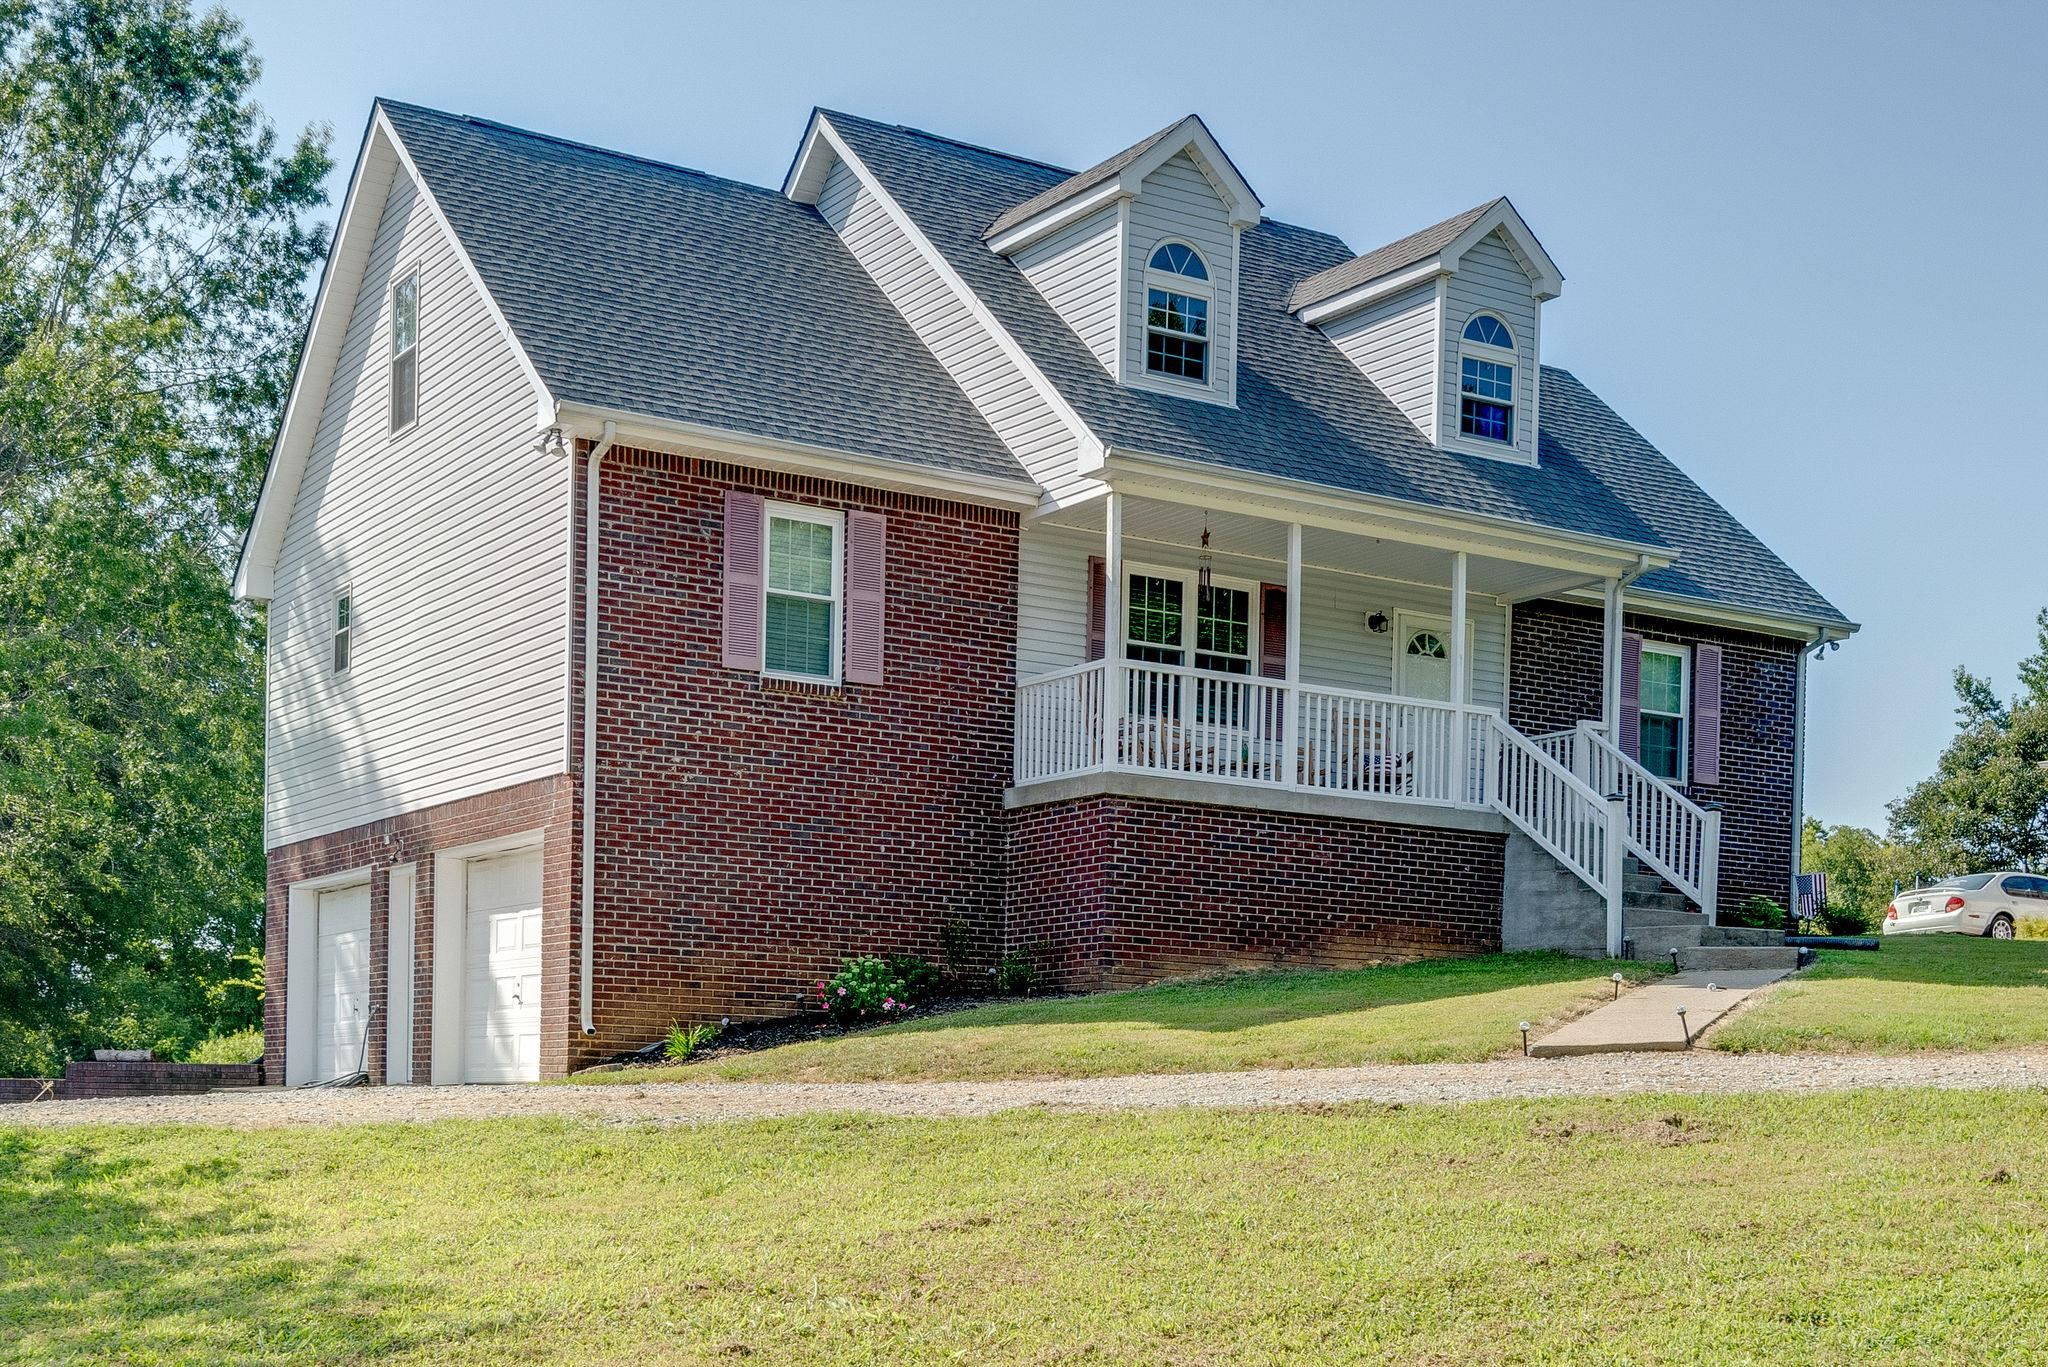 1010 Keystone Dr, Pleasant View, TN 37146 - Pleasant View, TN real estate listing